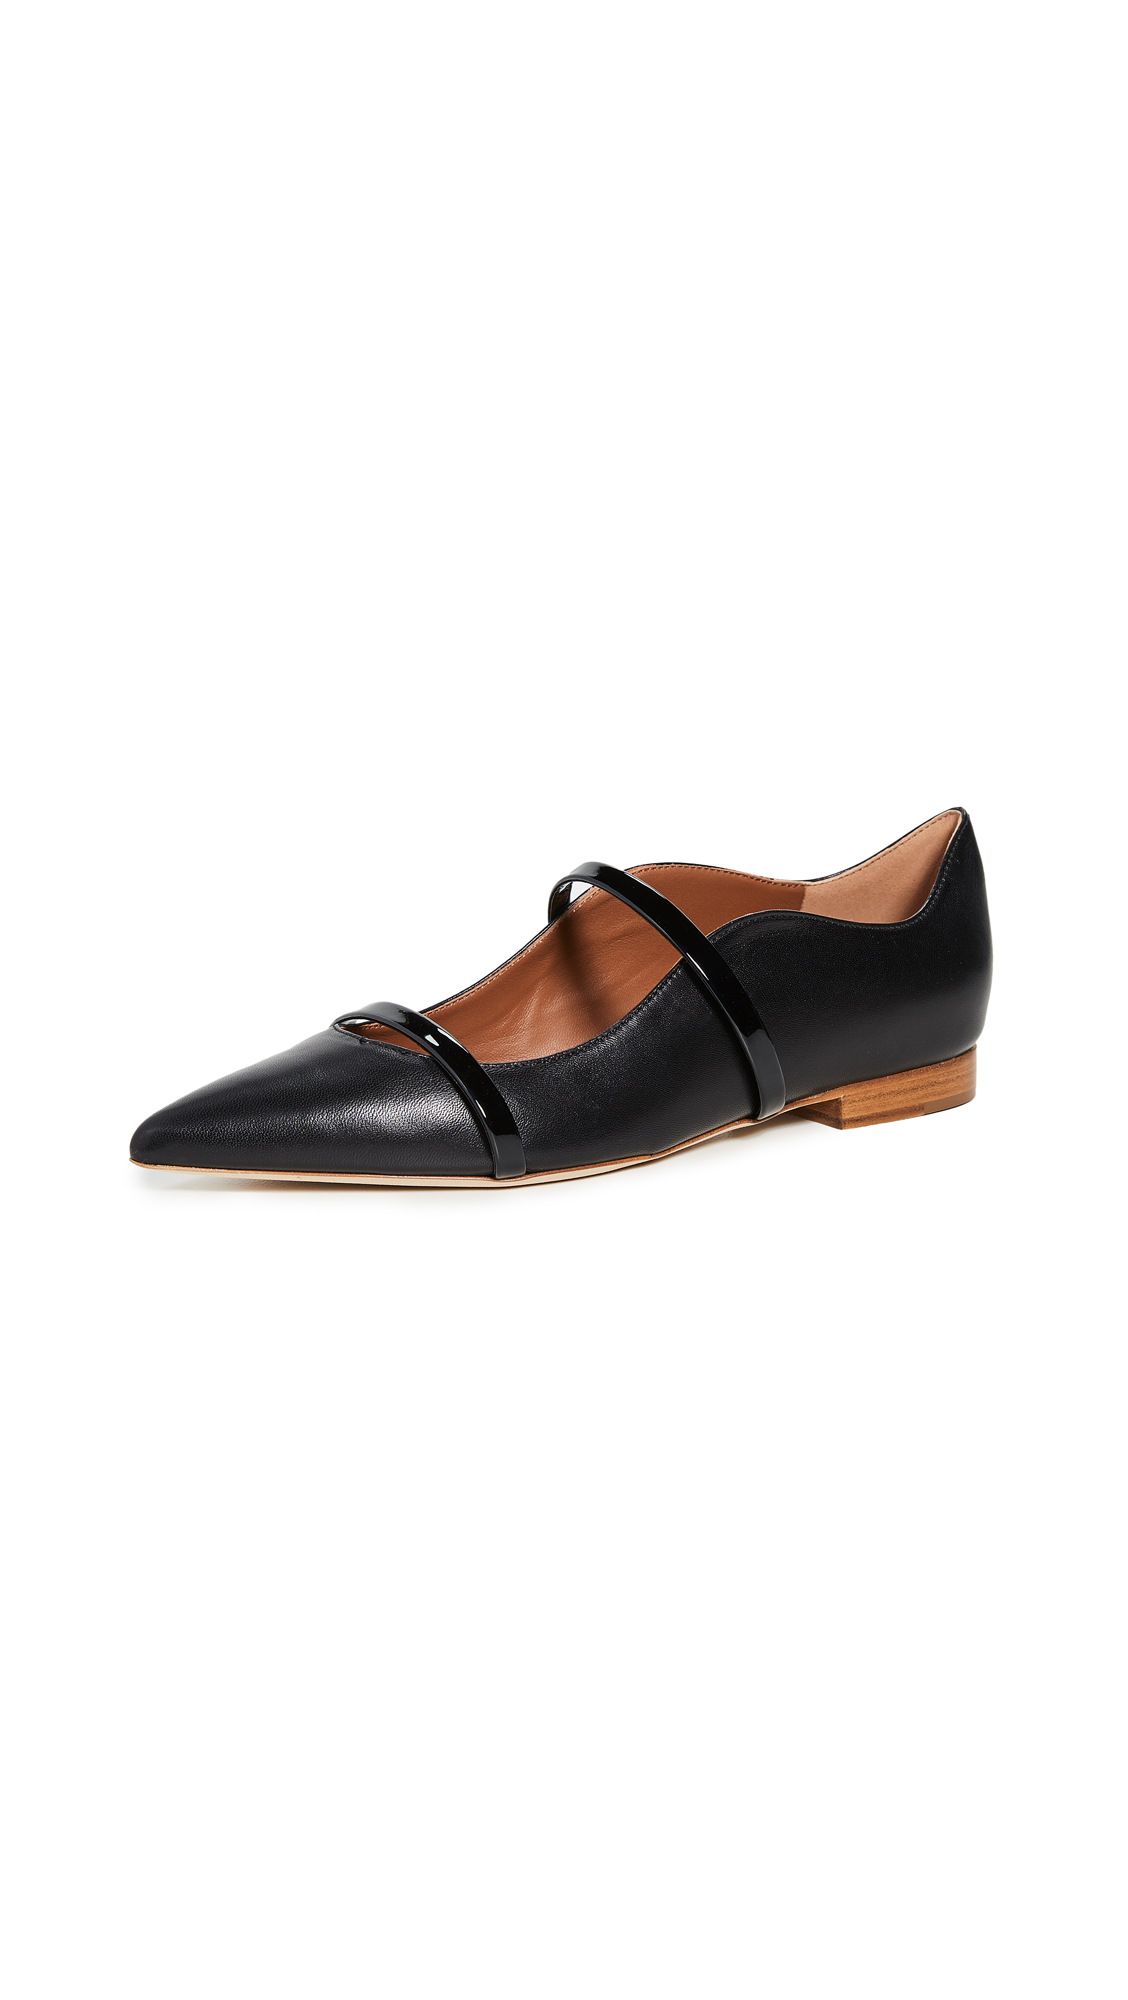 Buy Malone Souliers online - photo of Malone Souliers Maureen Flats